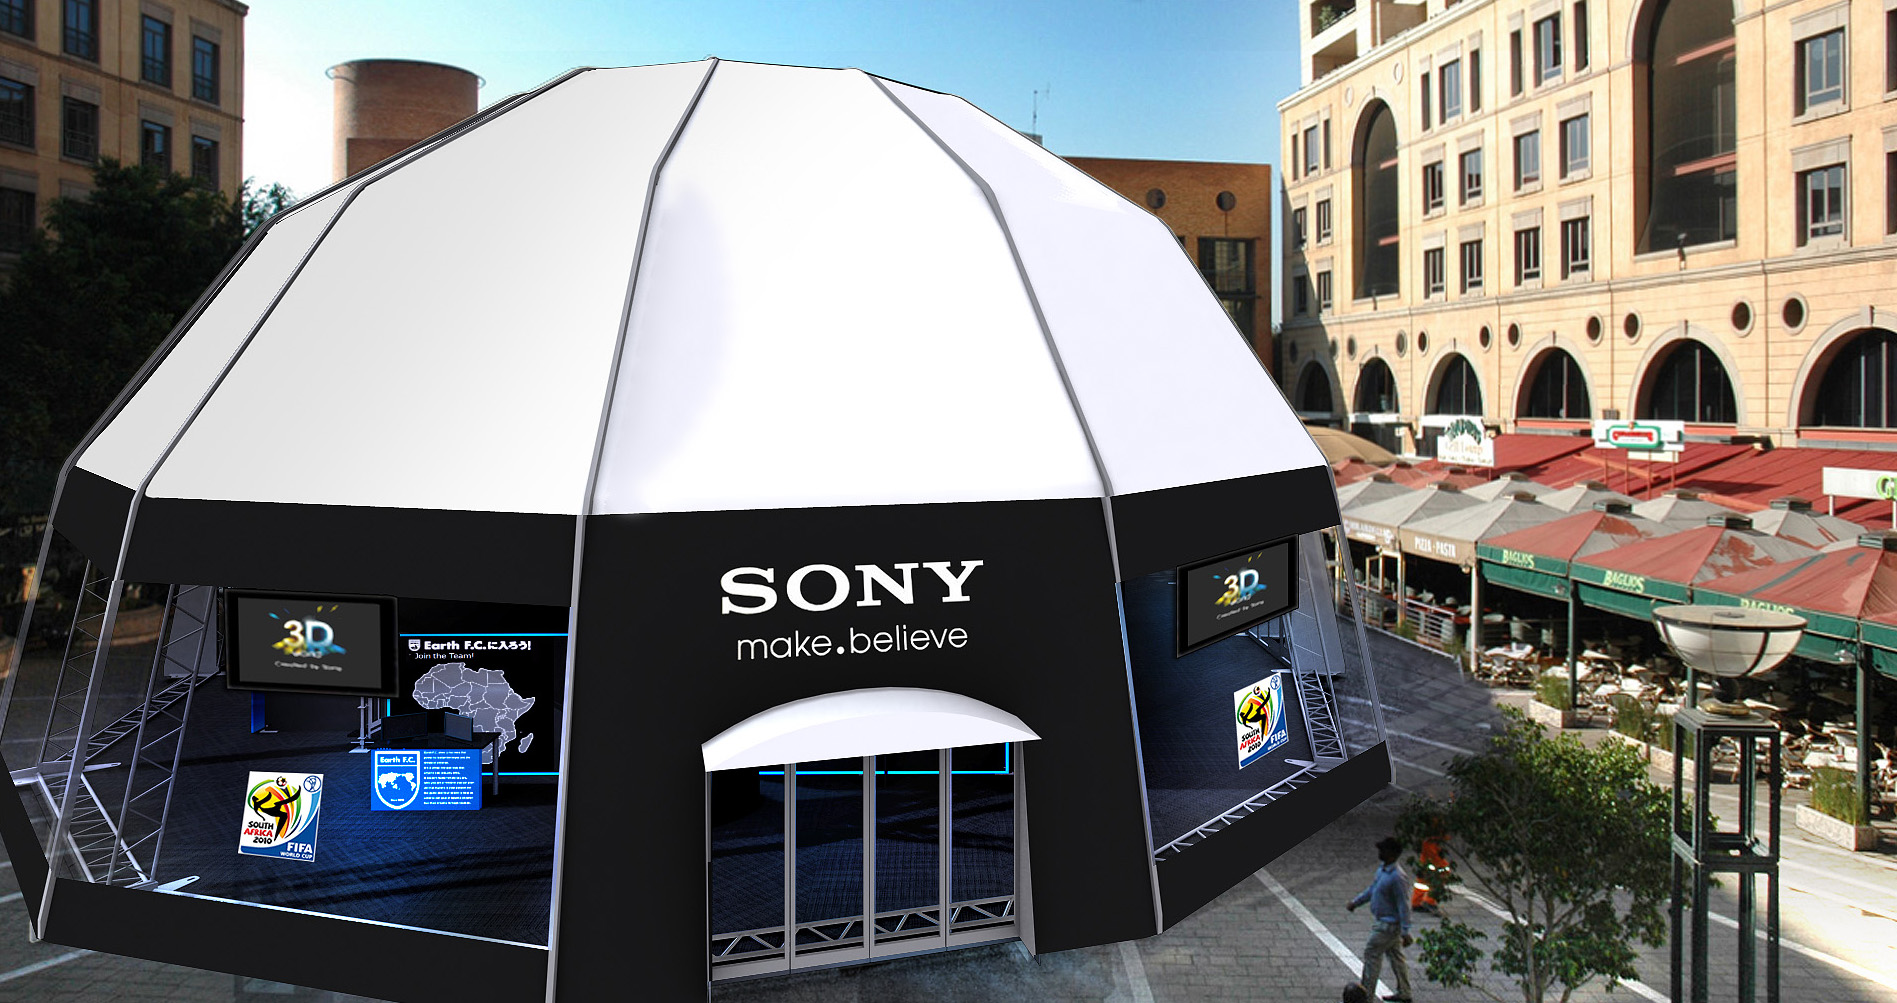 HD_Nelson Mandela Square_Sony 3D World_without statue